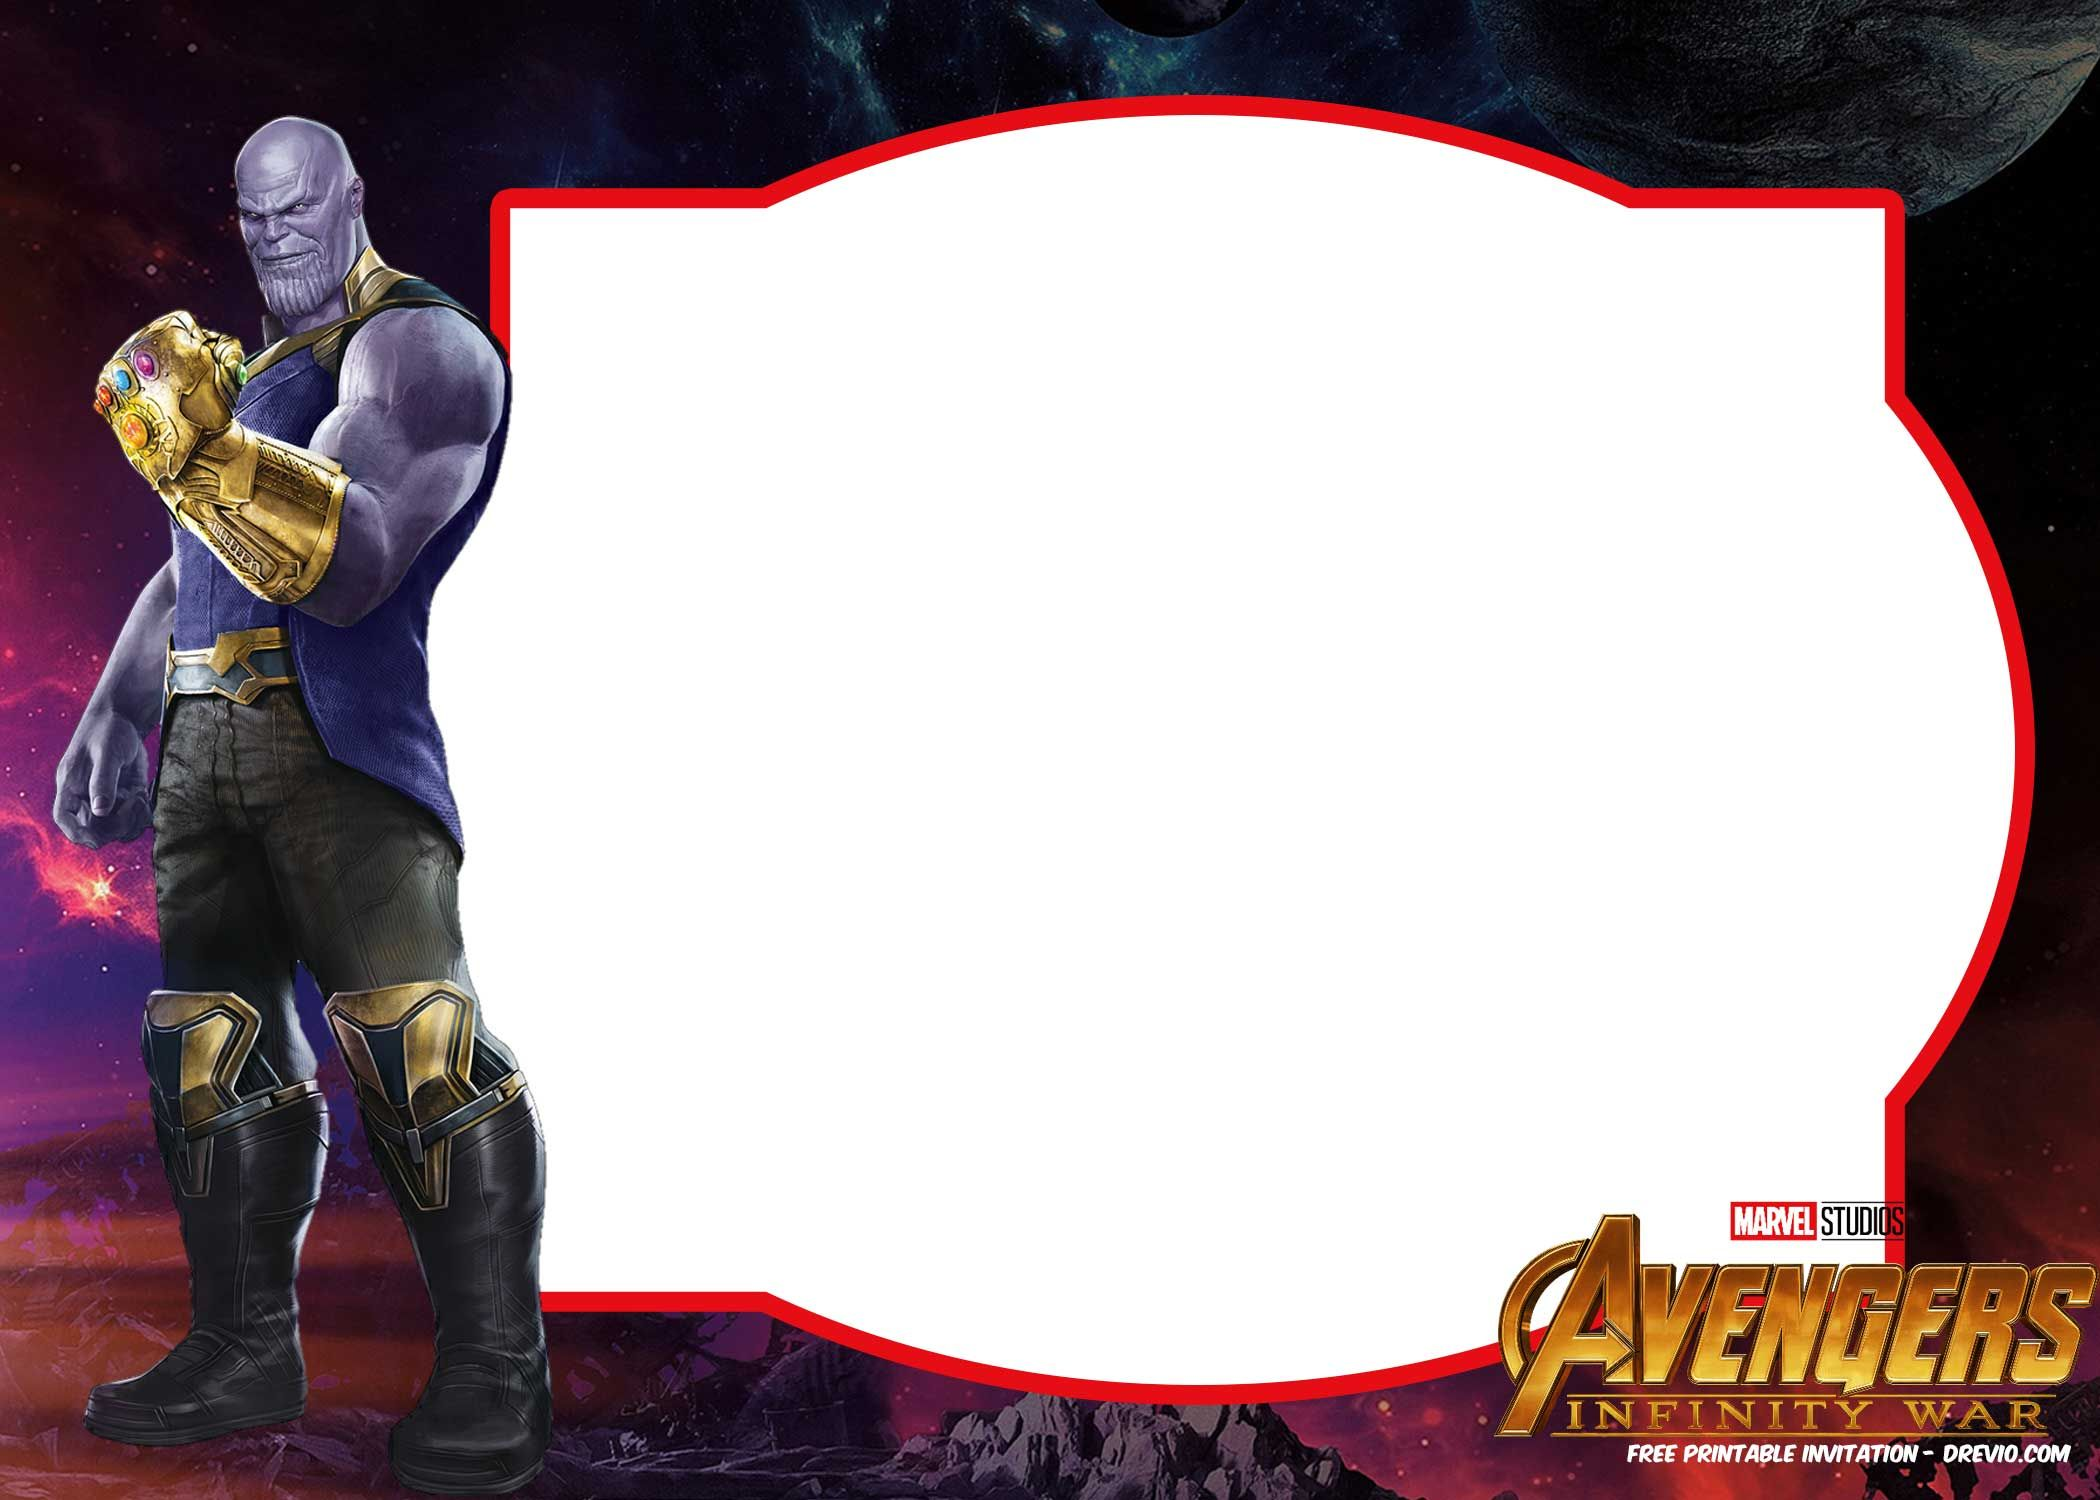 Free FREE Avengers Infinity Wars Birthday Invitation Templates